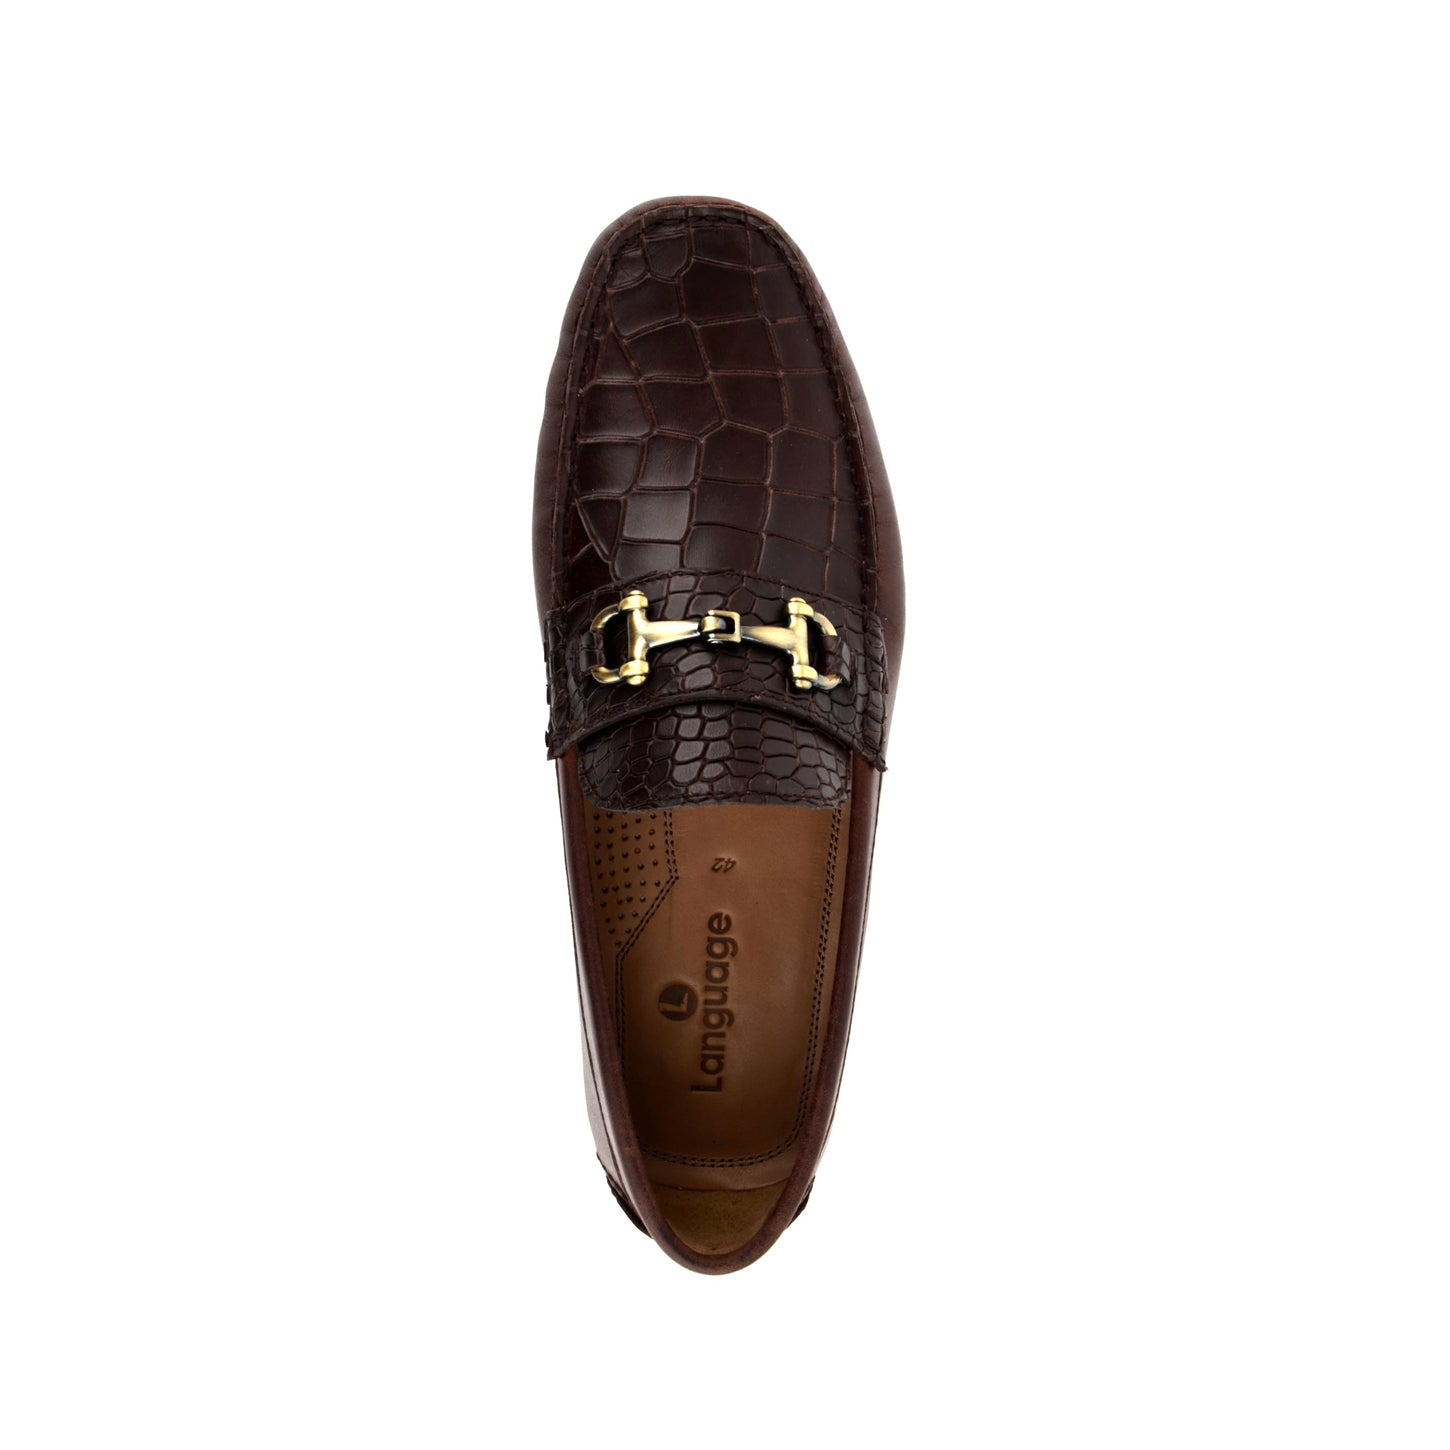 LM590 - Language Tian Men's Casuals Brown Drivers